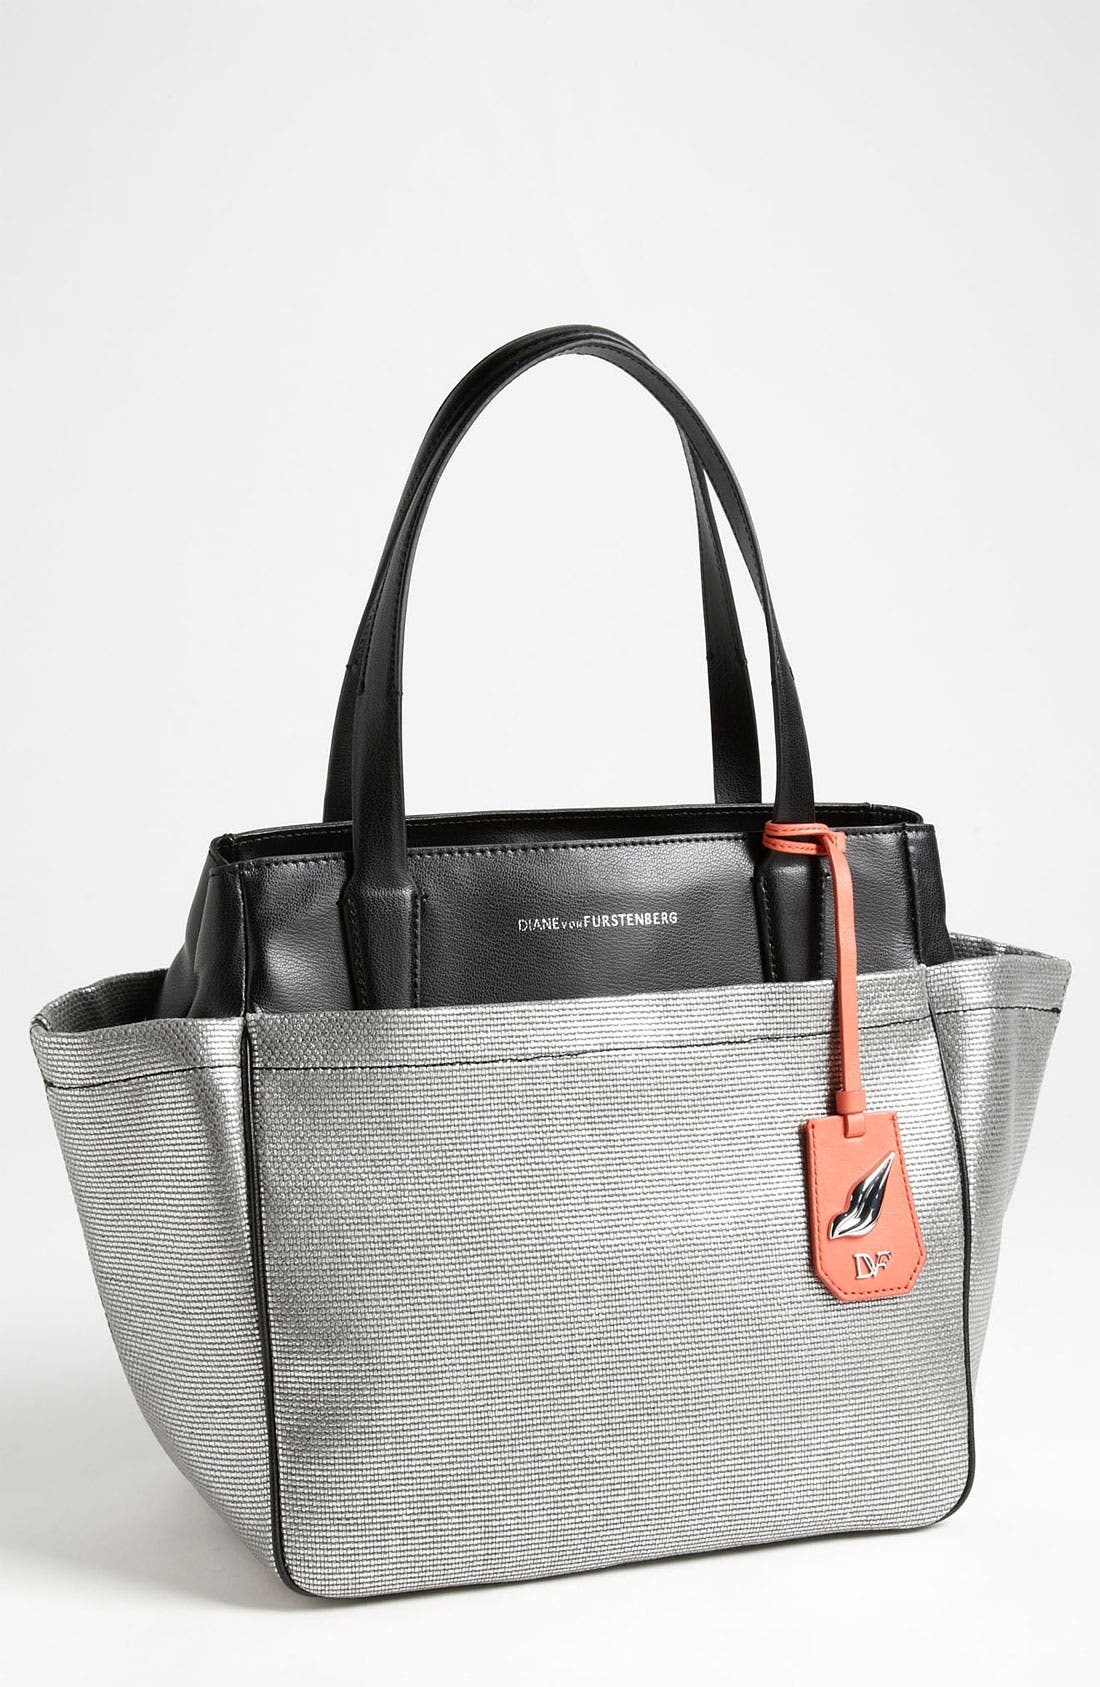 Alternate Image 1 Selected - Diane von Furstenberg 'On The Go' Metallic Canvas & Leather Tote